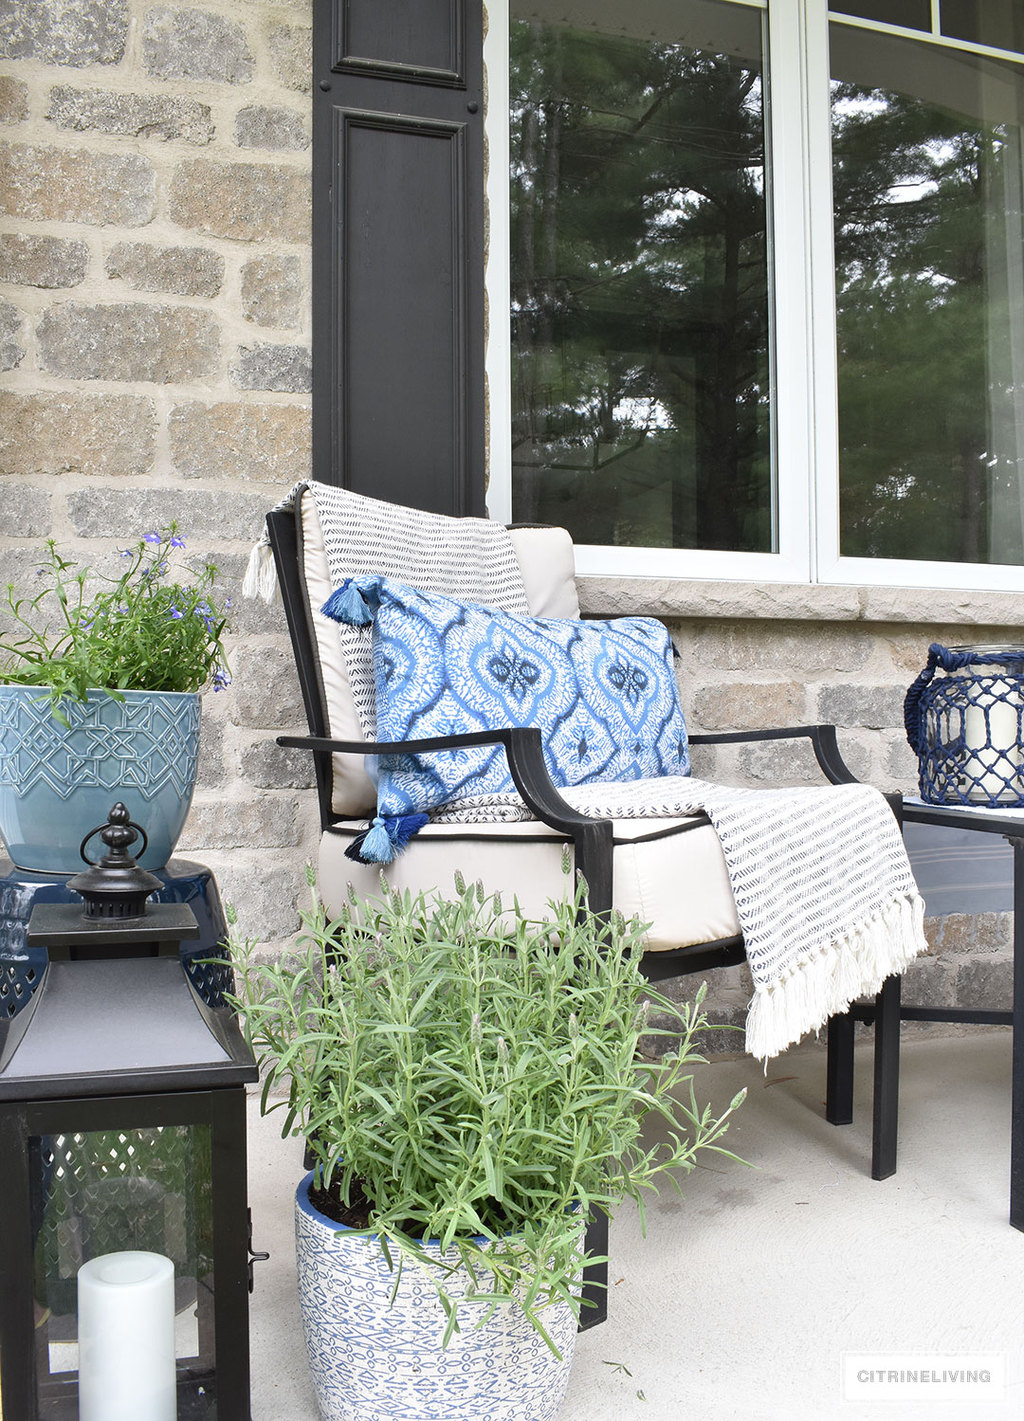 Create a chic Spring porch decorated with blue and white accents: garden stools, potted plants with some boho-chic and nautical pieces thrown into the mix!